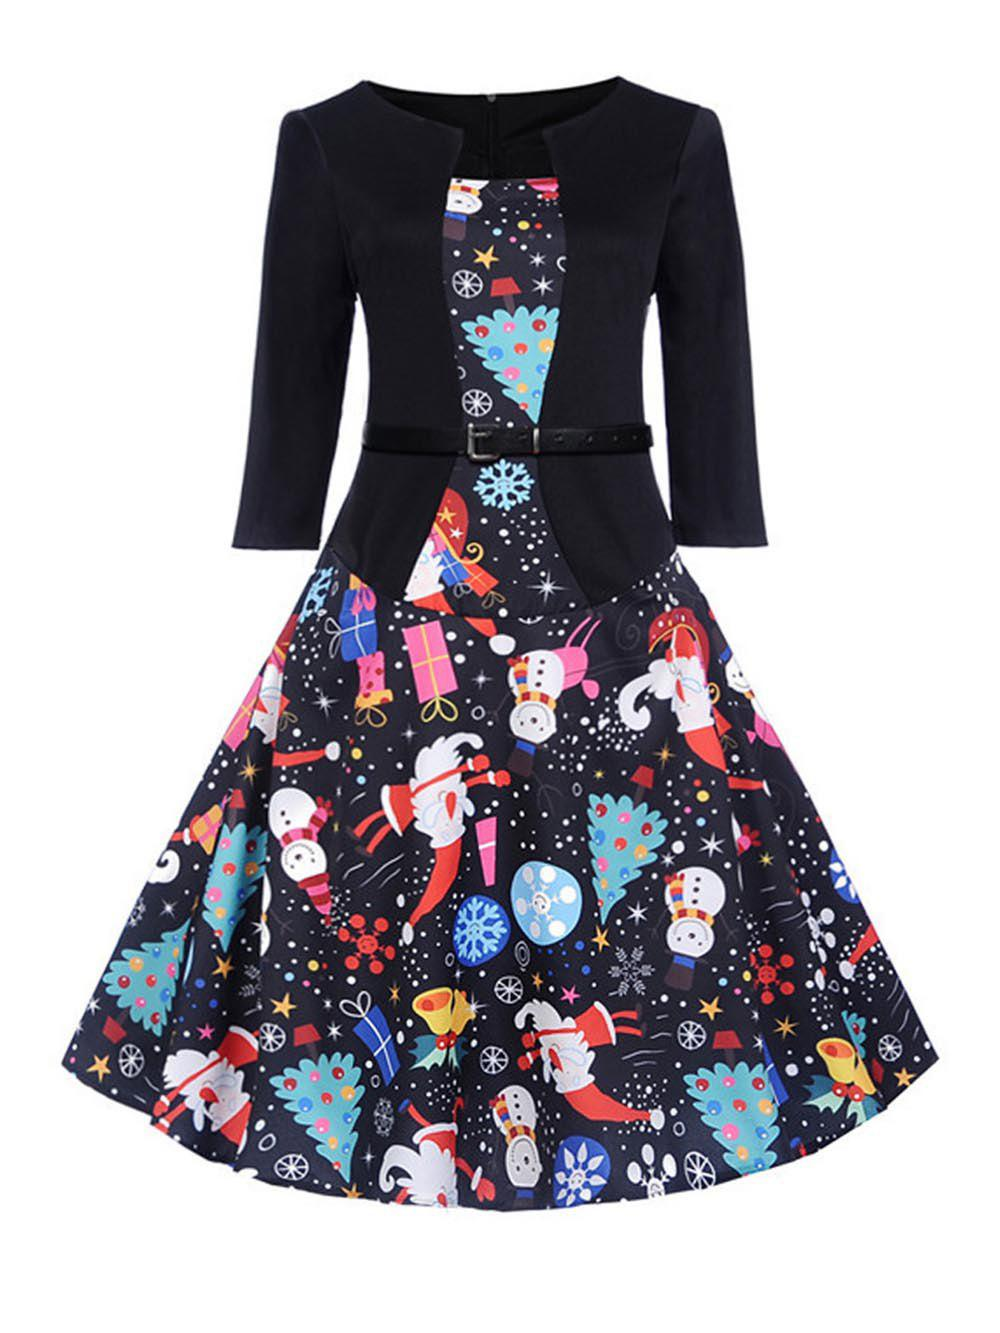 e9df4e34f67c1 Outfits Hepburn Vintage Series Women Dress Spring And Summer Round Neck Christmas  Printing Design 3